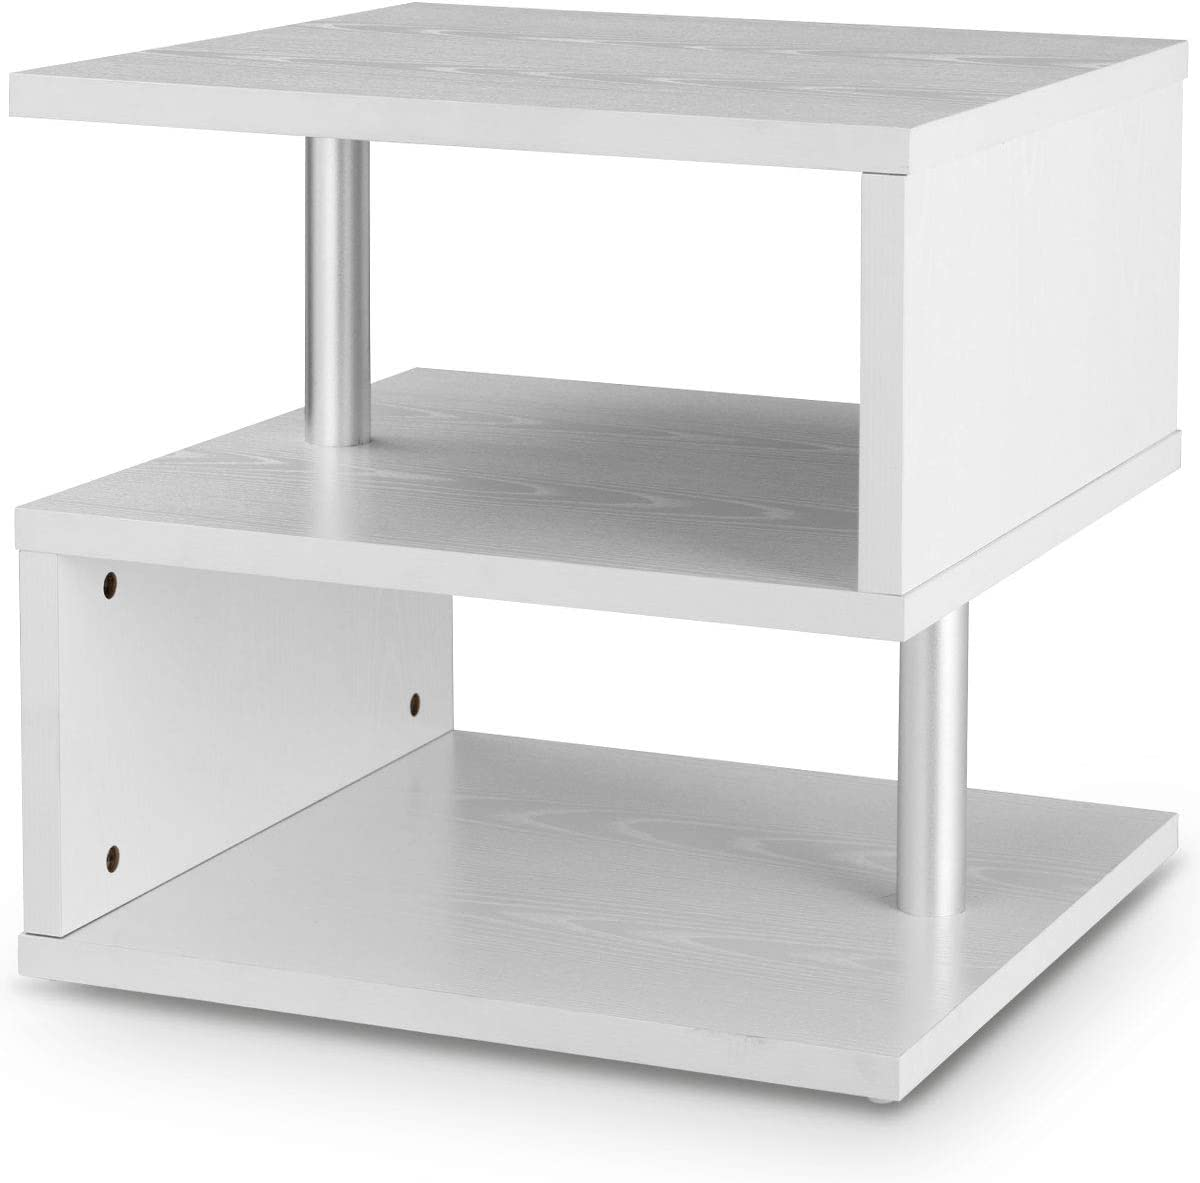 COSTWAY Wooden S Shape Coffee Table 2 Tier Storage Shelves Organizer Sofa Couch Cube End Desk Bedroom Living Room Display Shelf Office Study Bookcase White